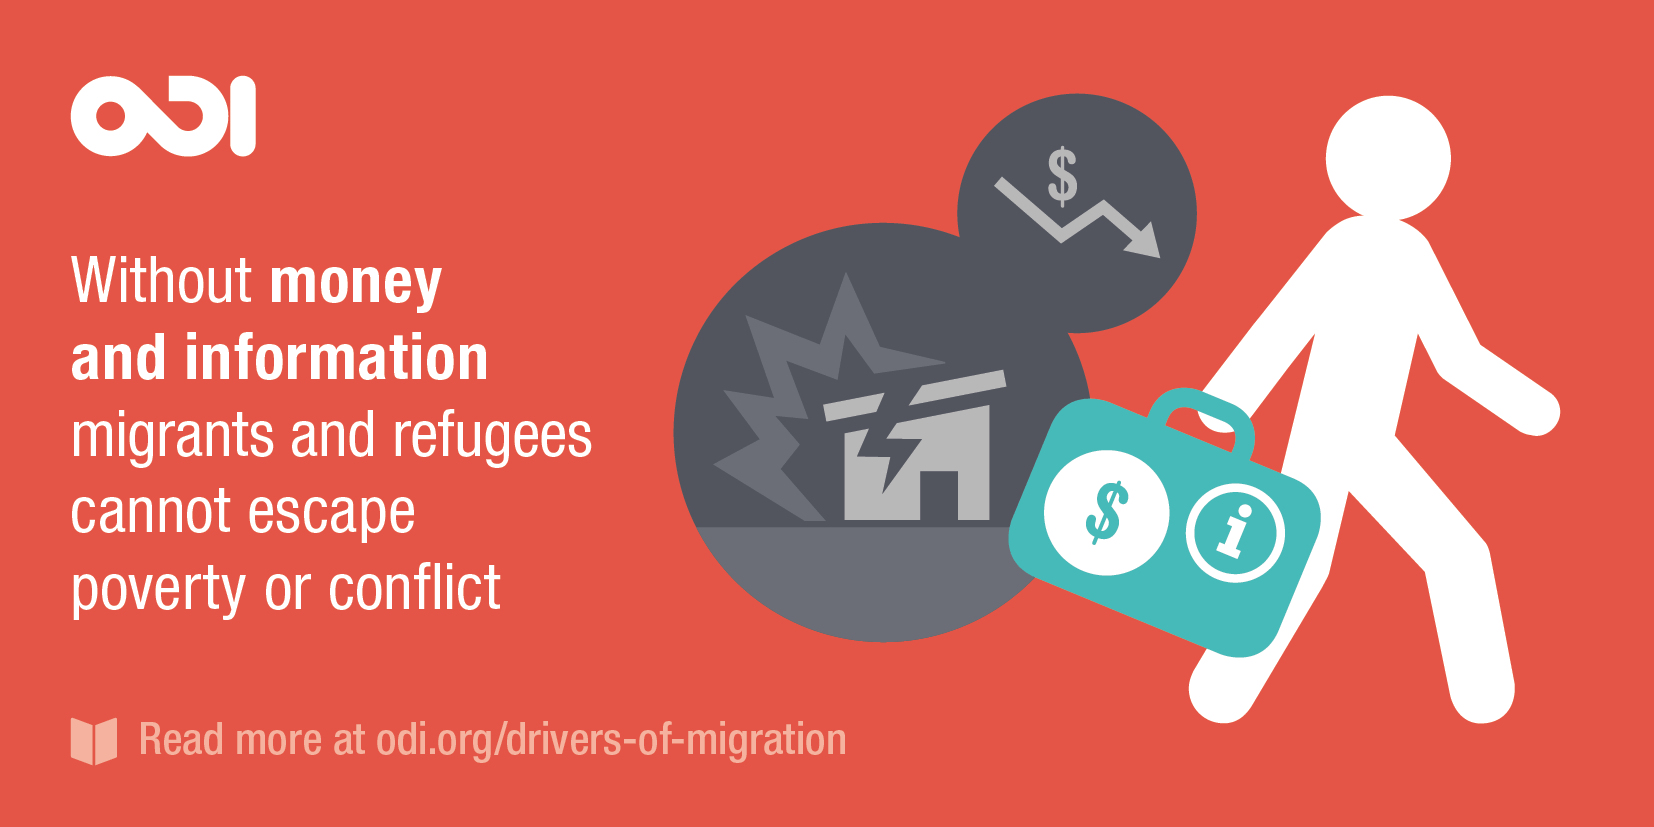 Illustration: without money and information, migrants and refugees cannot escape poverty or conflict